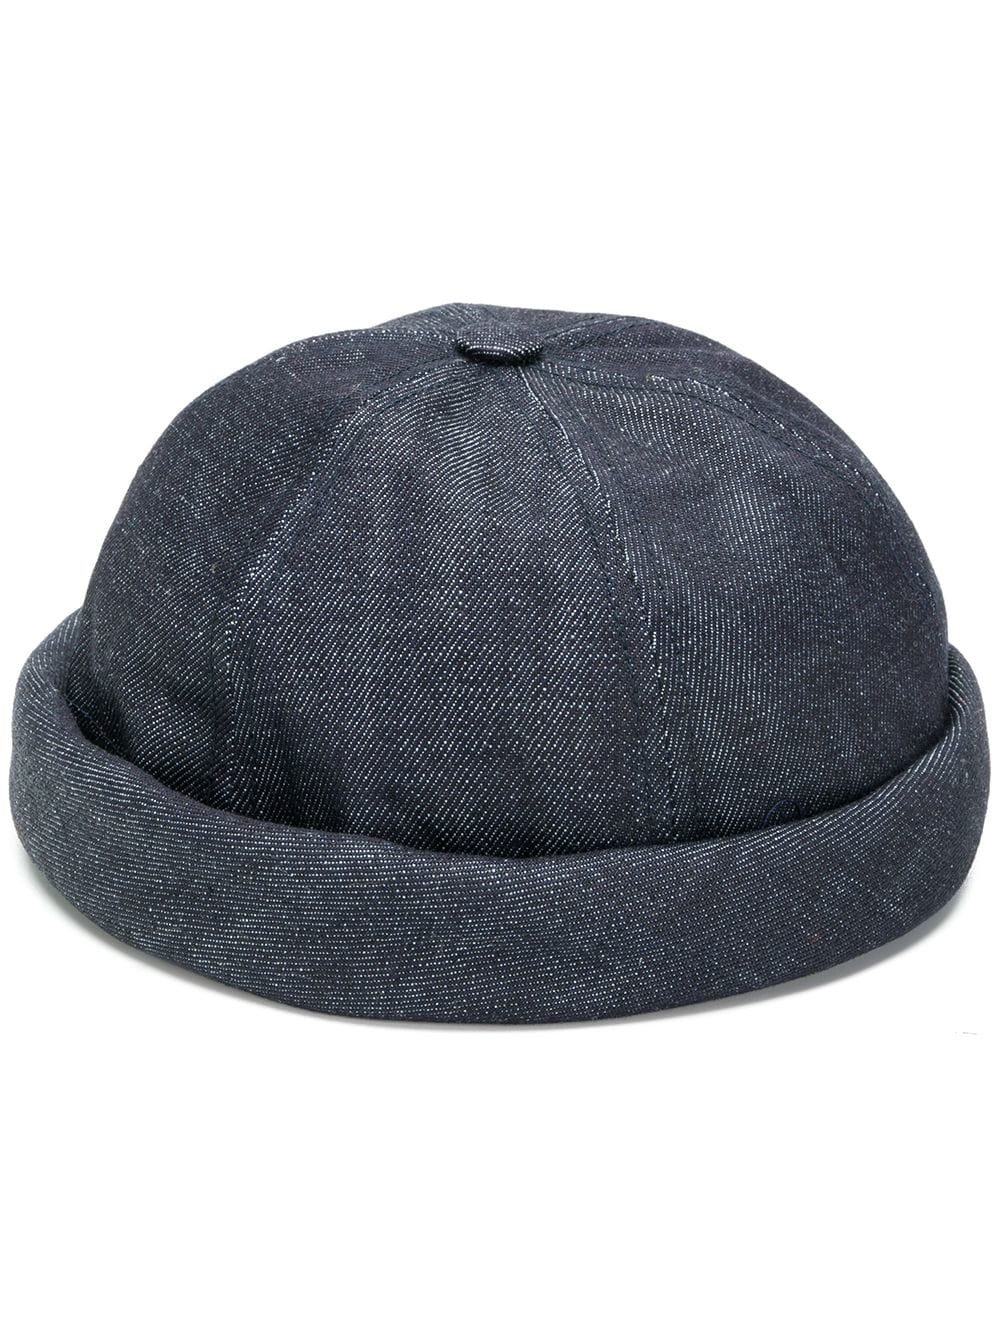 446c3373d65 beton-cire-miki-denim-sailor-cap-blue-farfetch-com-photo.jpg 1548853995